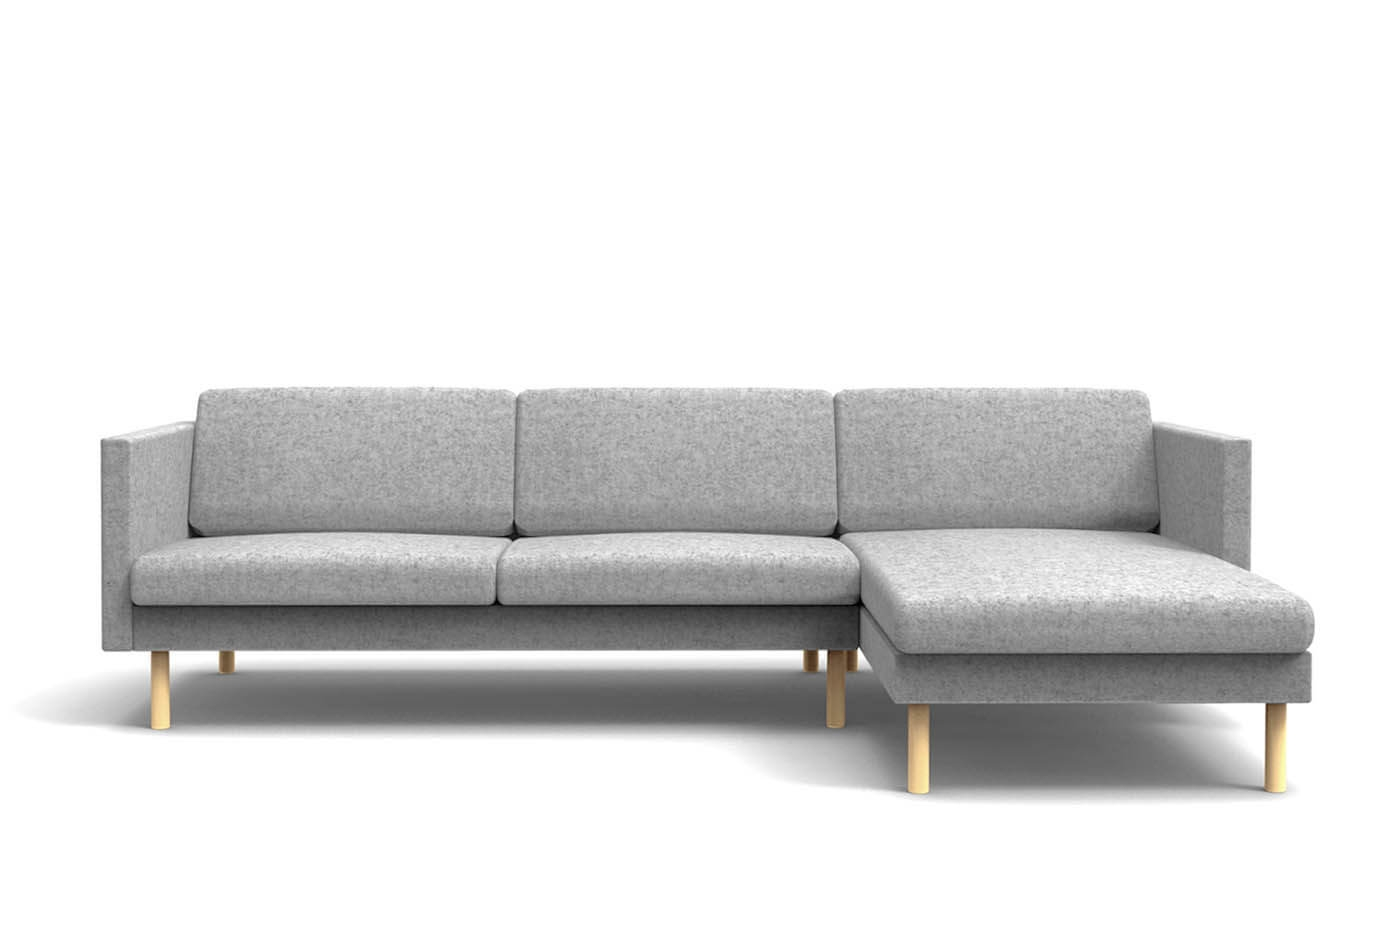 Sofa Chaise Lounges Throughout 2018 Leaf Sofa Chaise Lounge Left – Oot Oot Studio (View 5 of 15)